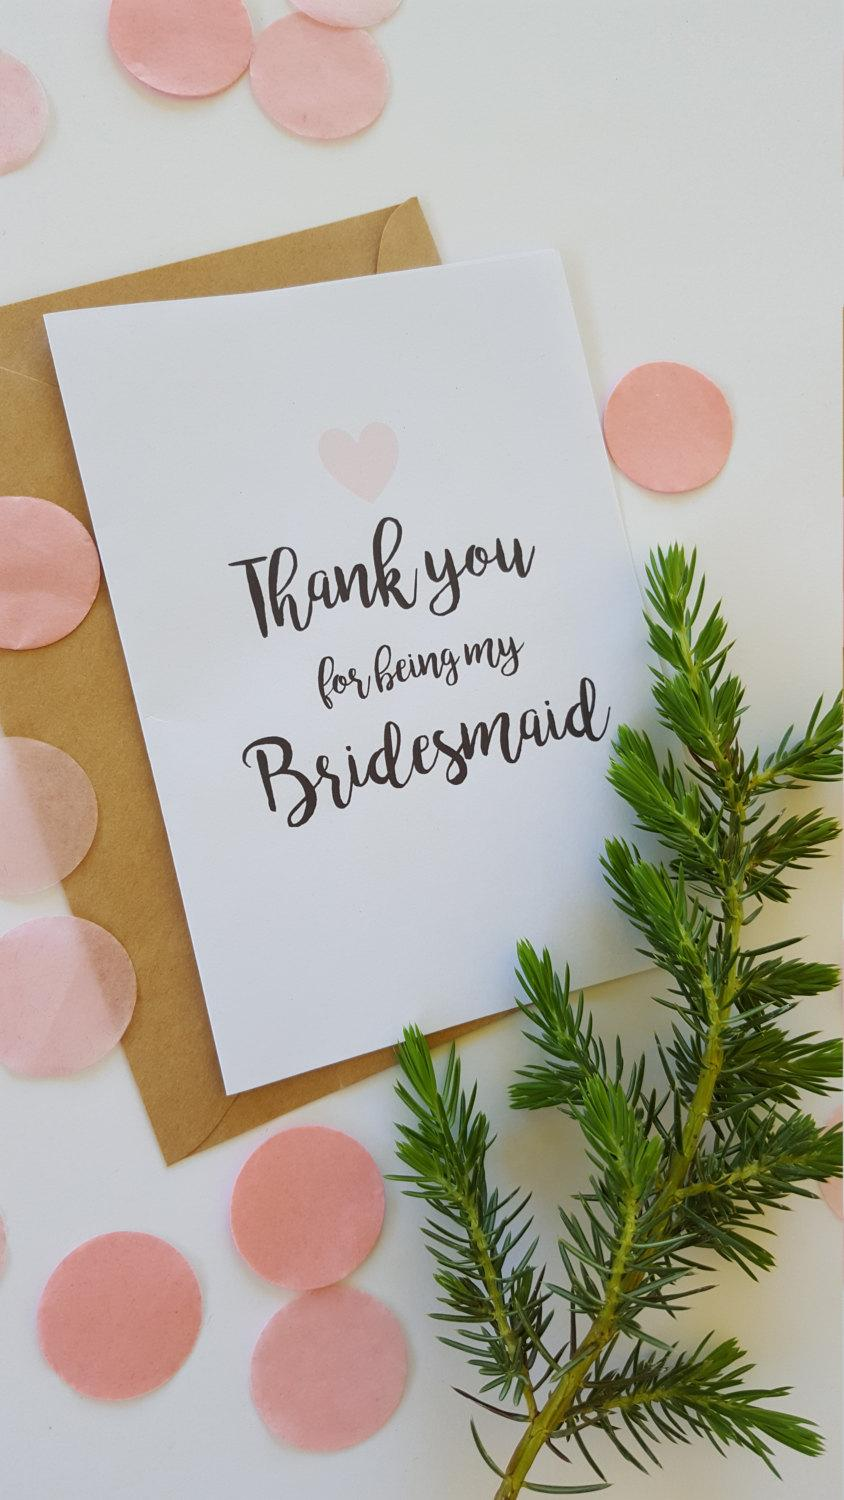 Wedding - Thank you for being my Bridesmaid Card/ Maid of Honour/ Flower Girl /AUSTRALIAN SELLER - C19